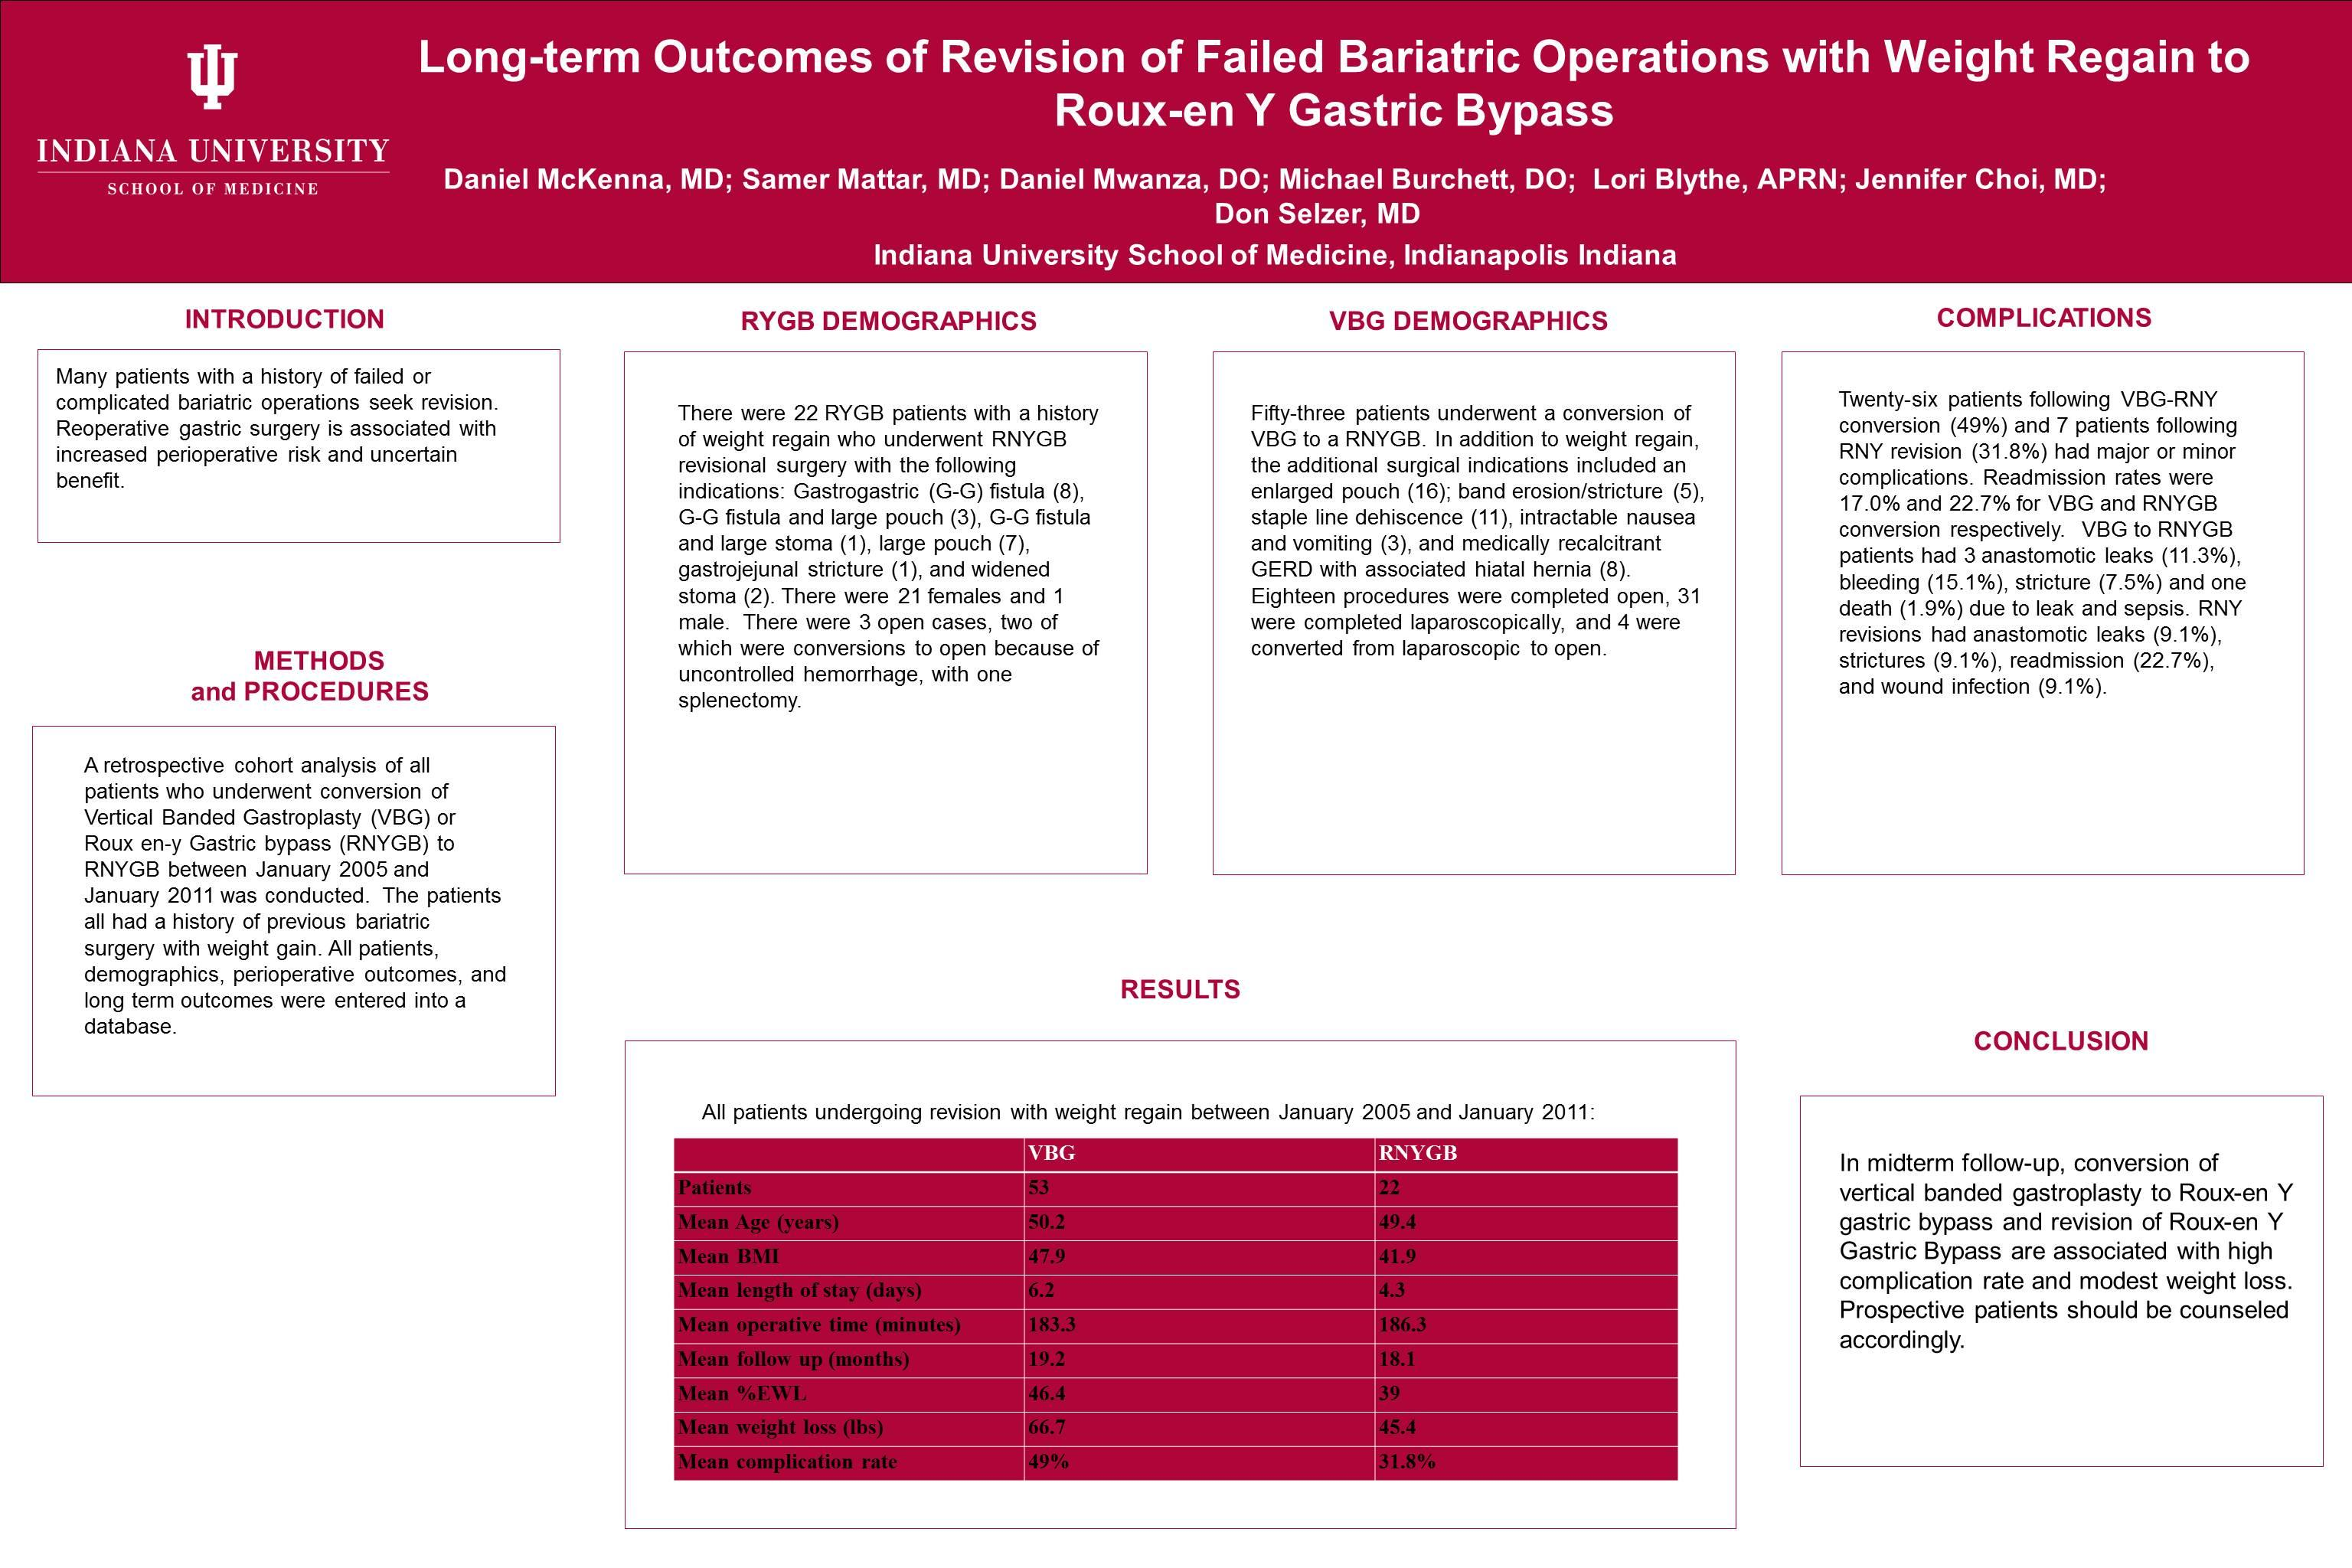 Long Term Outcomes Of Revision Of Failed Bariatric Operations With